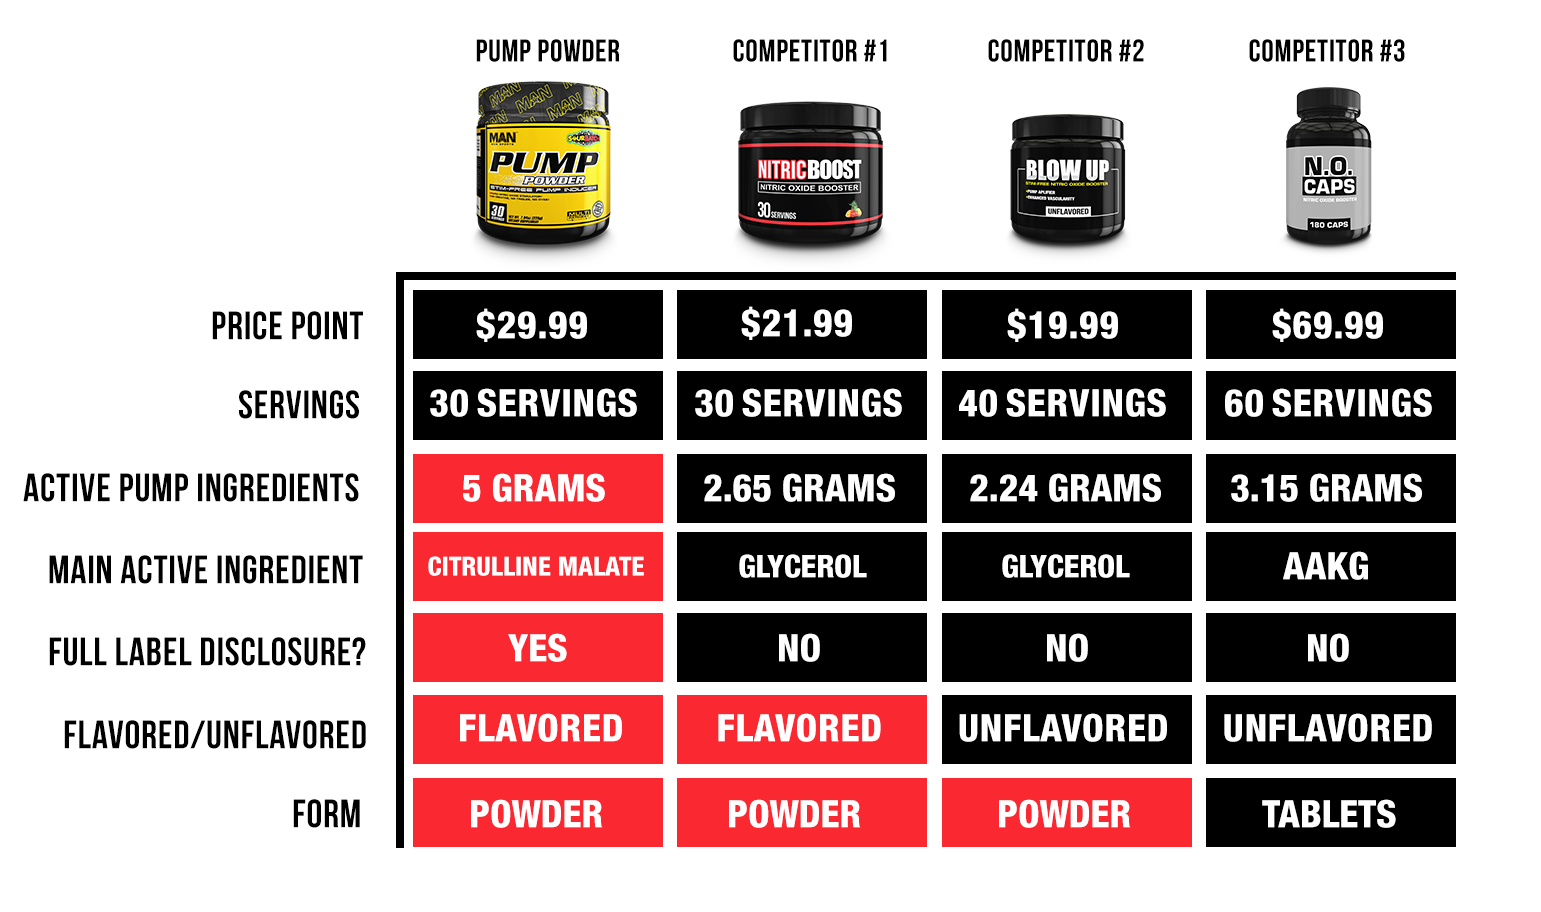 Man Sports Pump Powder